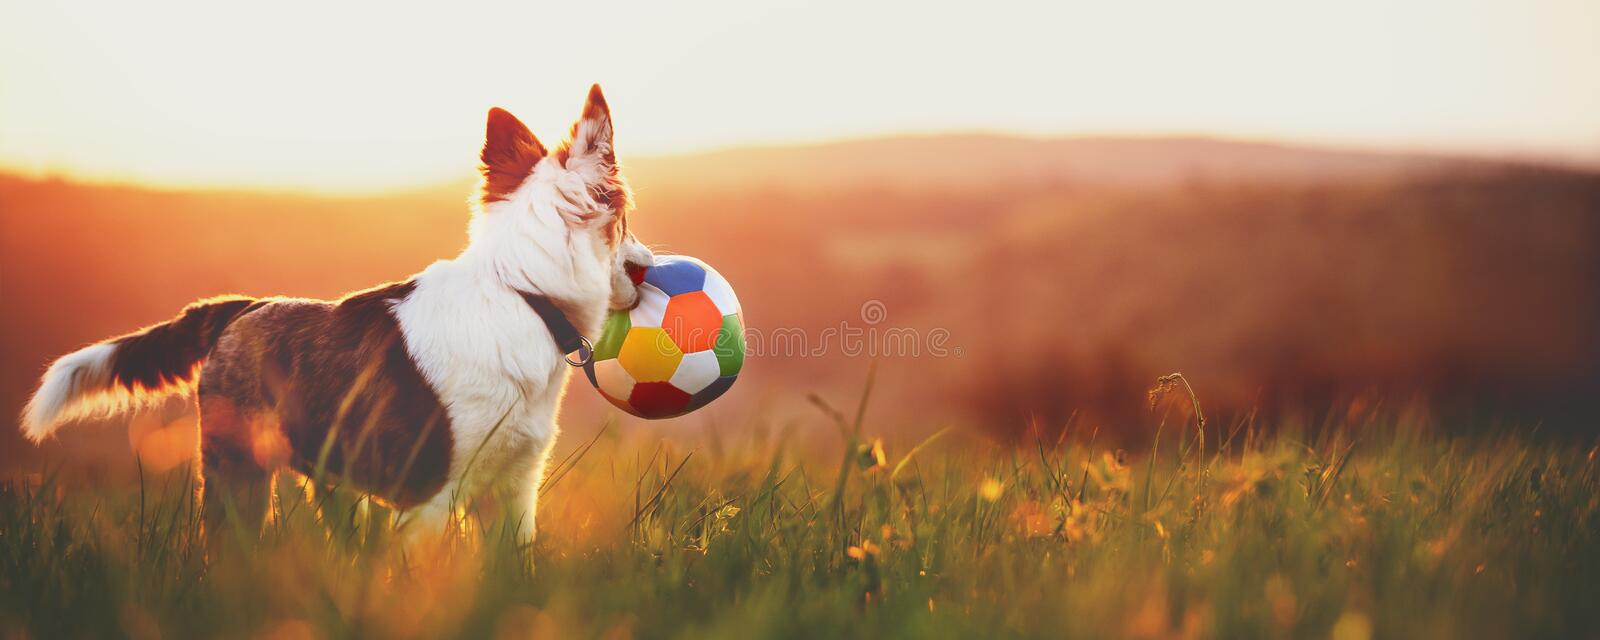 Panorama, portrait of a cute young dog with a ball, sunrise or s stock photography